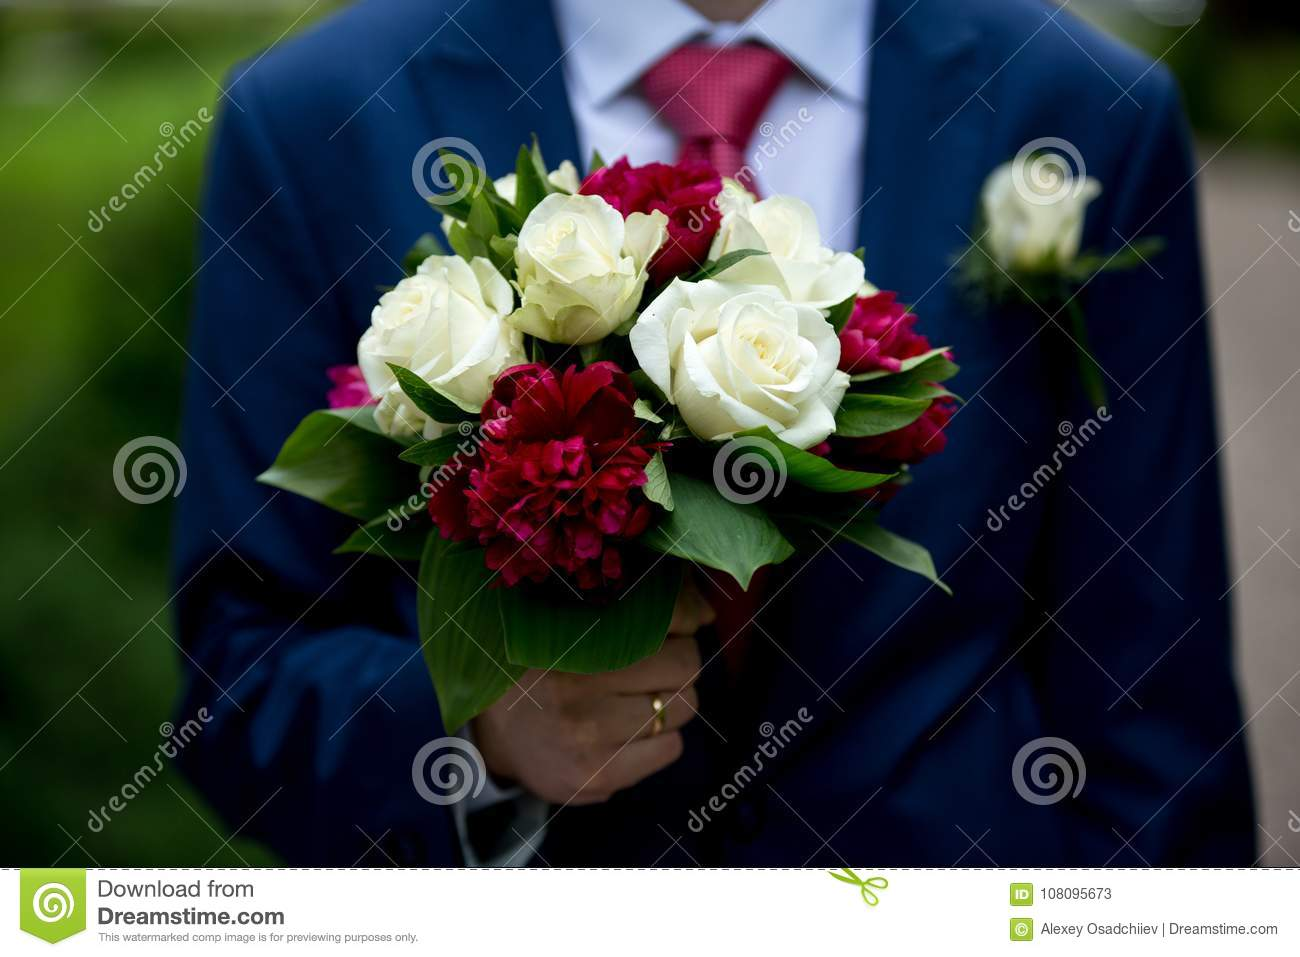 Man with flower bouquet stock image image of love birthday 108095673 man with flower bouquet izmirmasajfo Gallery